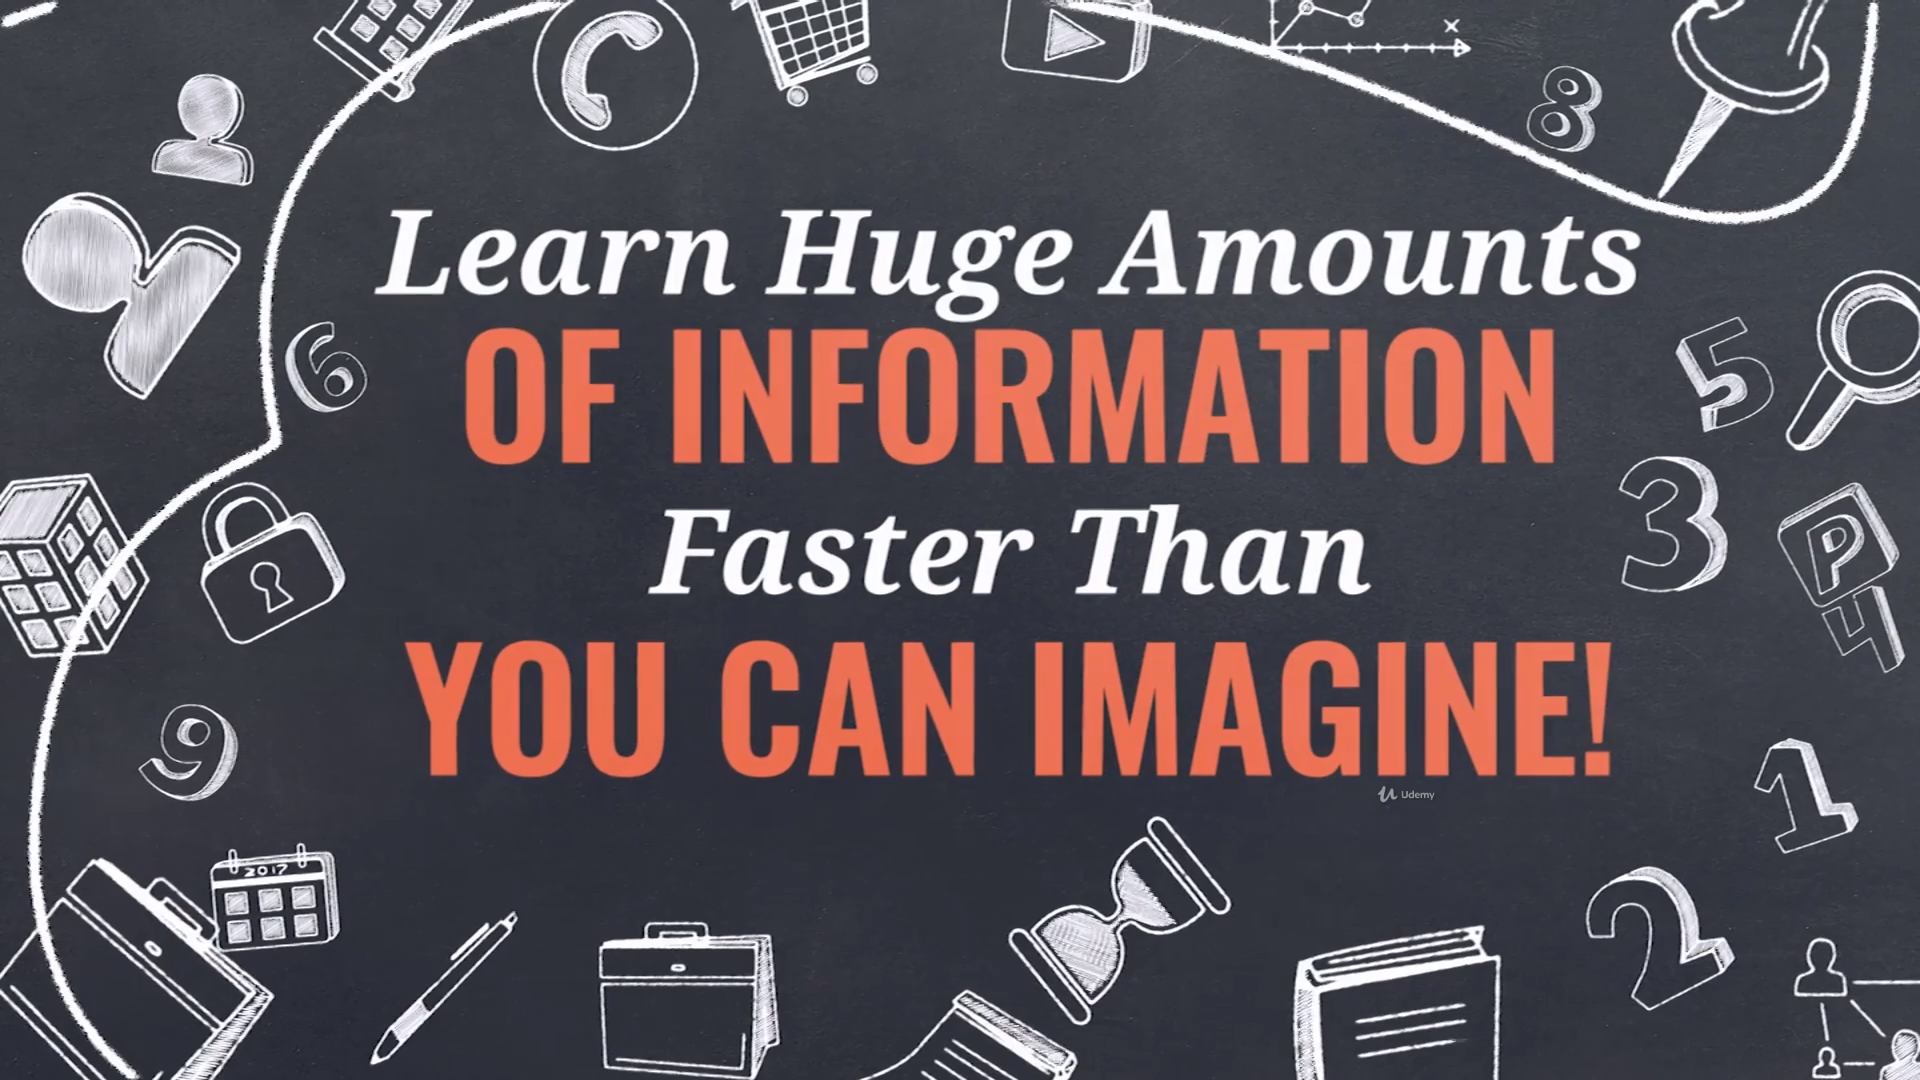 A screenshot of a presentation slide that says learn huge amounts of information faster than you can imagine